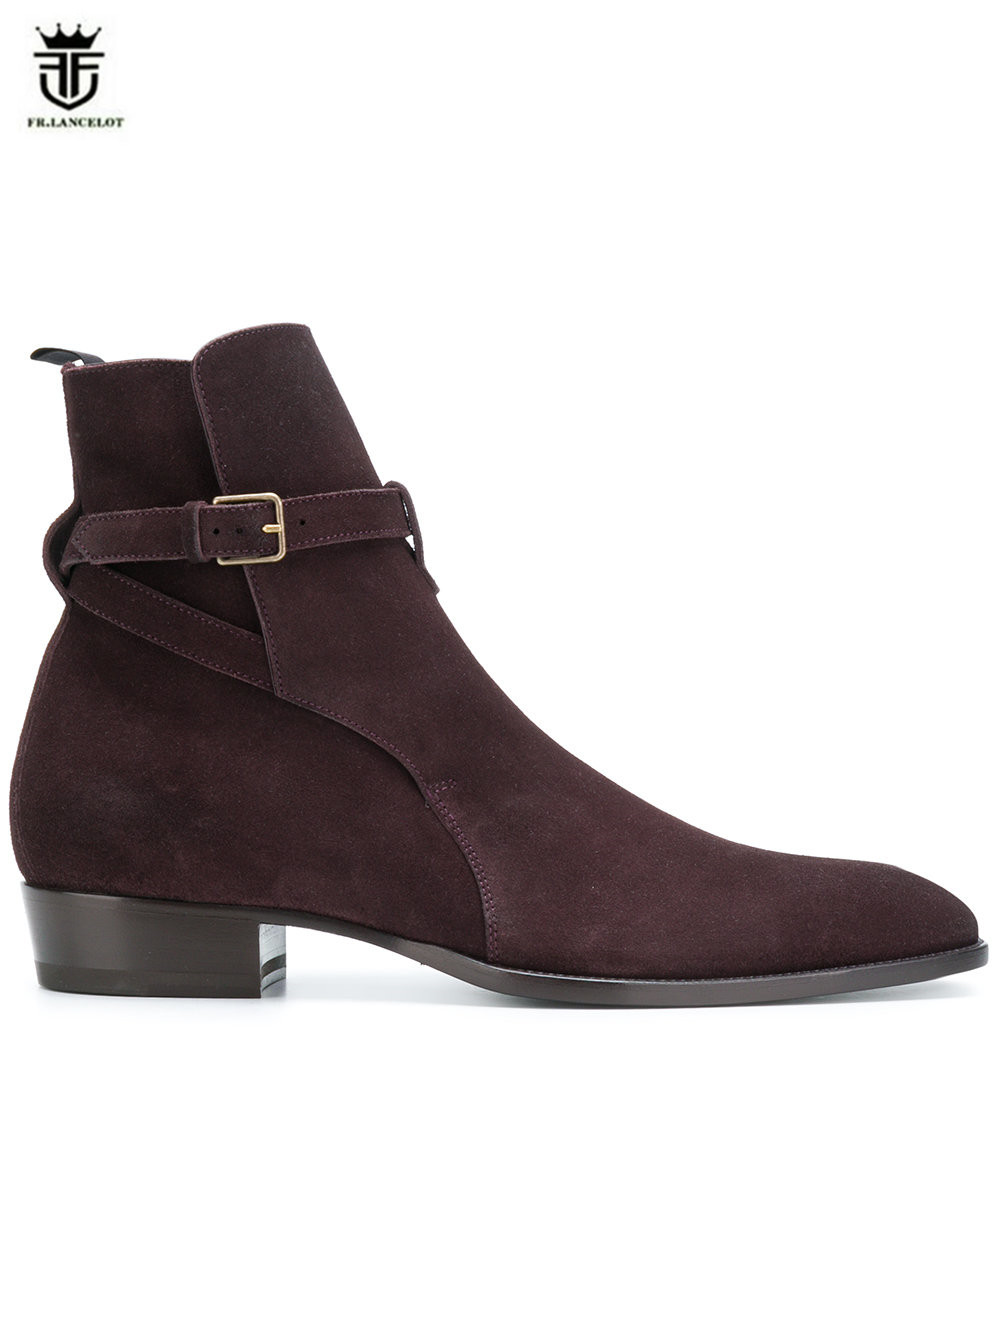 FR.LANCELOT 2018 new fashion men suede leather boots British style men buckle boots slip on party shoes male chelsea booties zosuo men boots buckle desert british male boots leather martin boots tide retro tooling men s shoes zs337